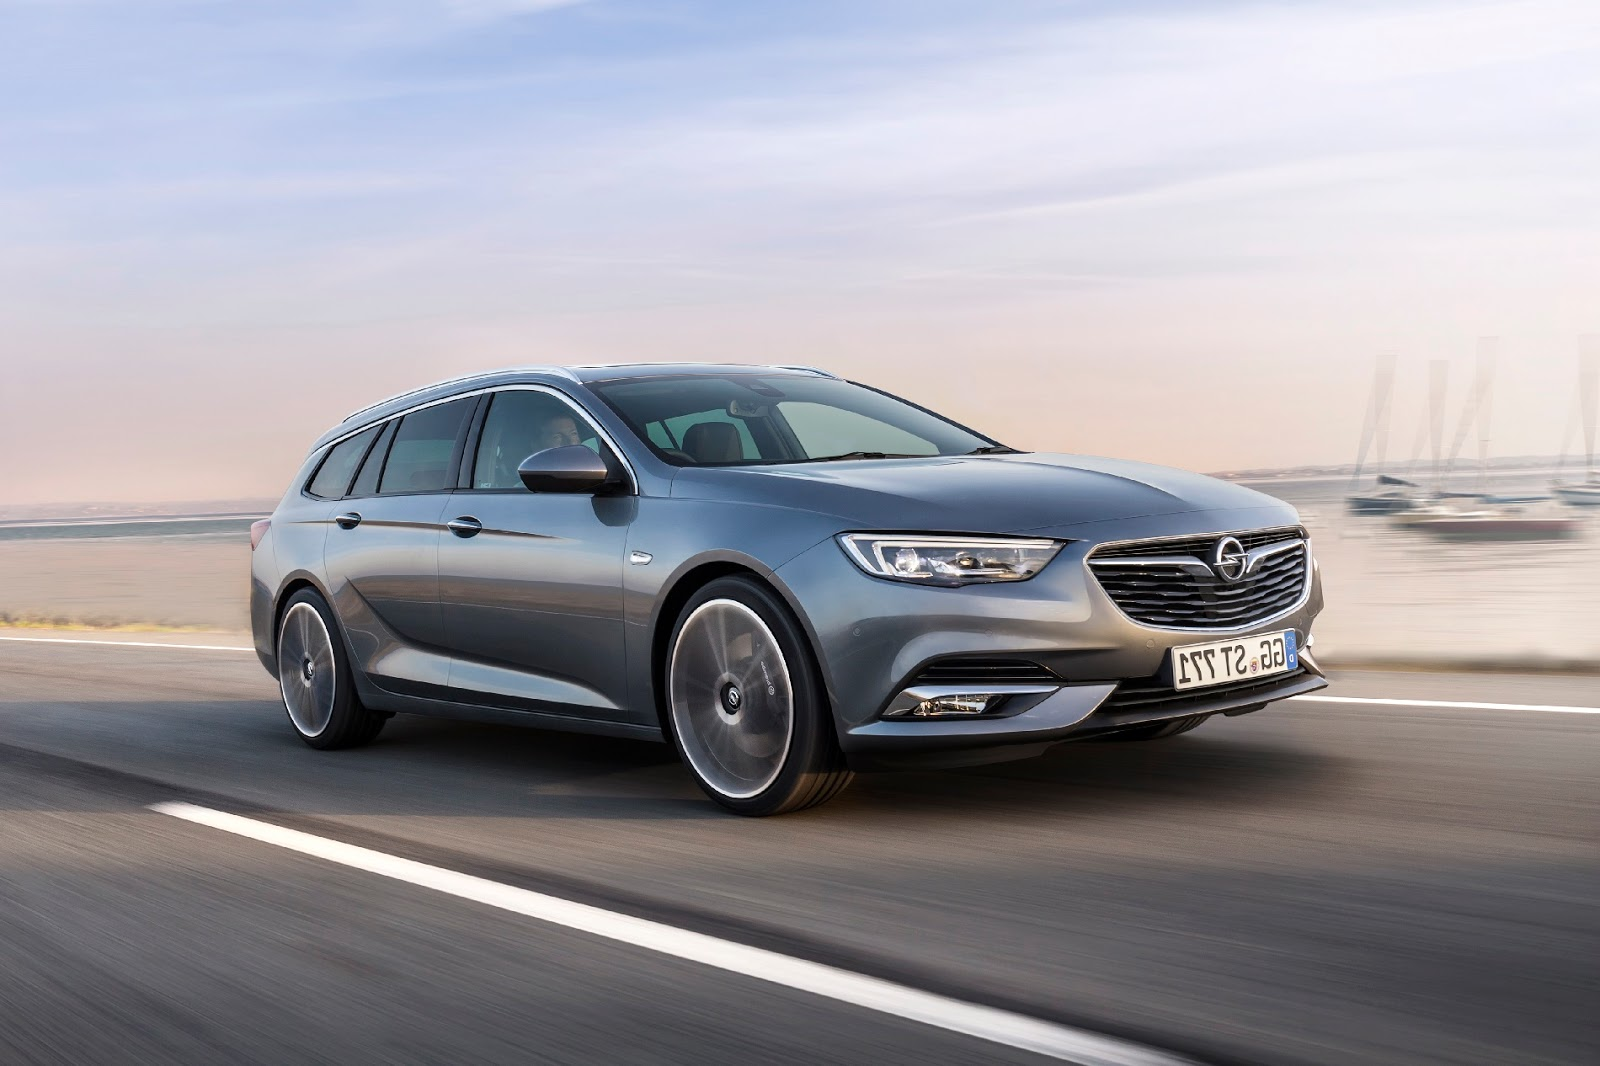 Meet The New Opel Insignia Sports Tourer Turbo Charged 15 Liter 2018 Next Generation Not Only Looks More Elegant And Sporty It Is Also Practical Overhang Between Bumper Trunk Reduced